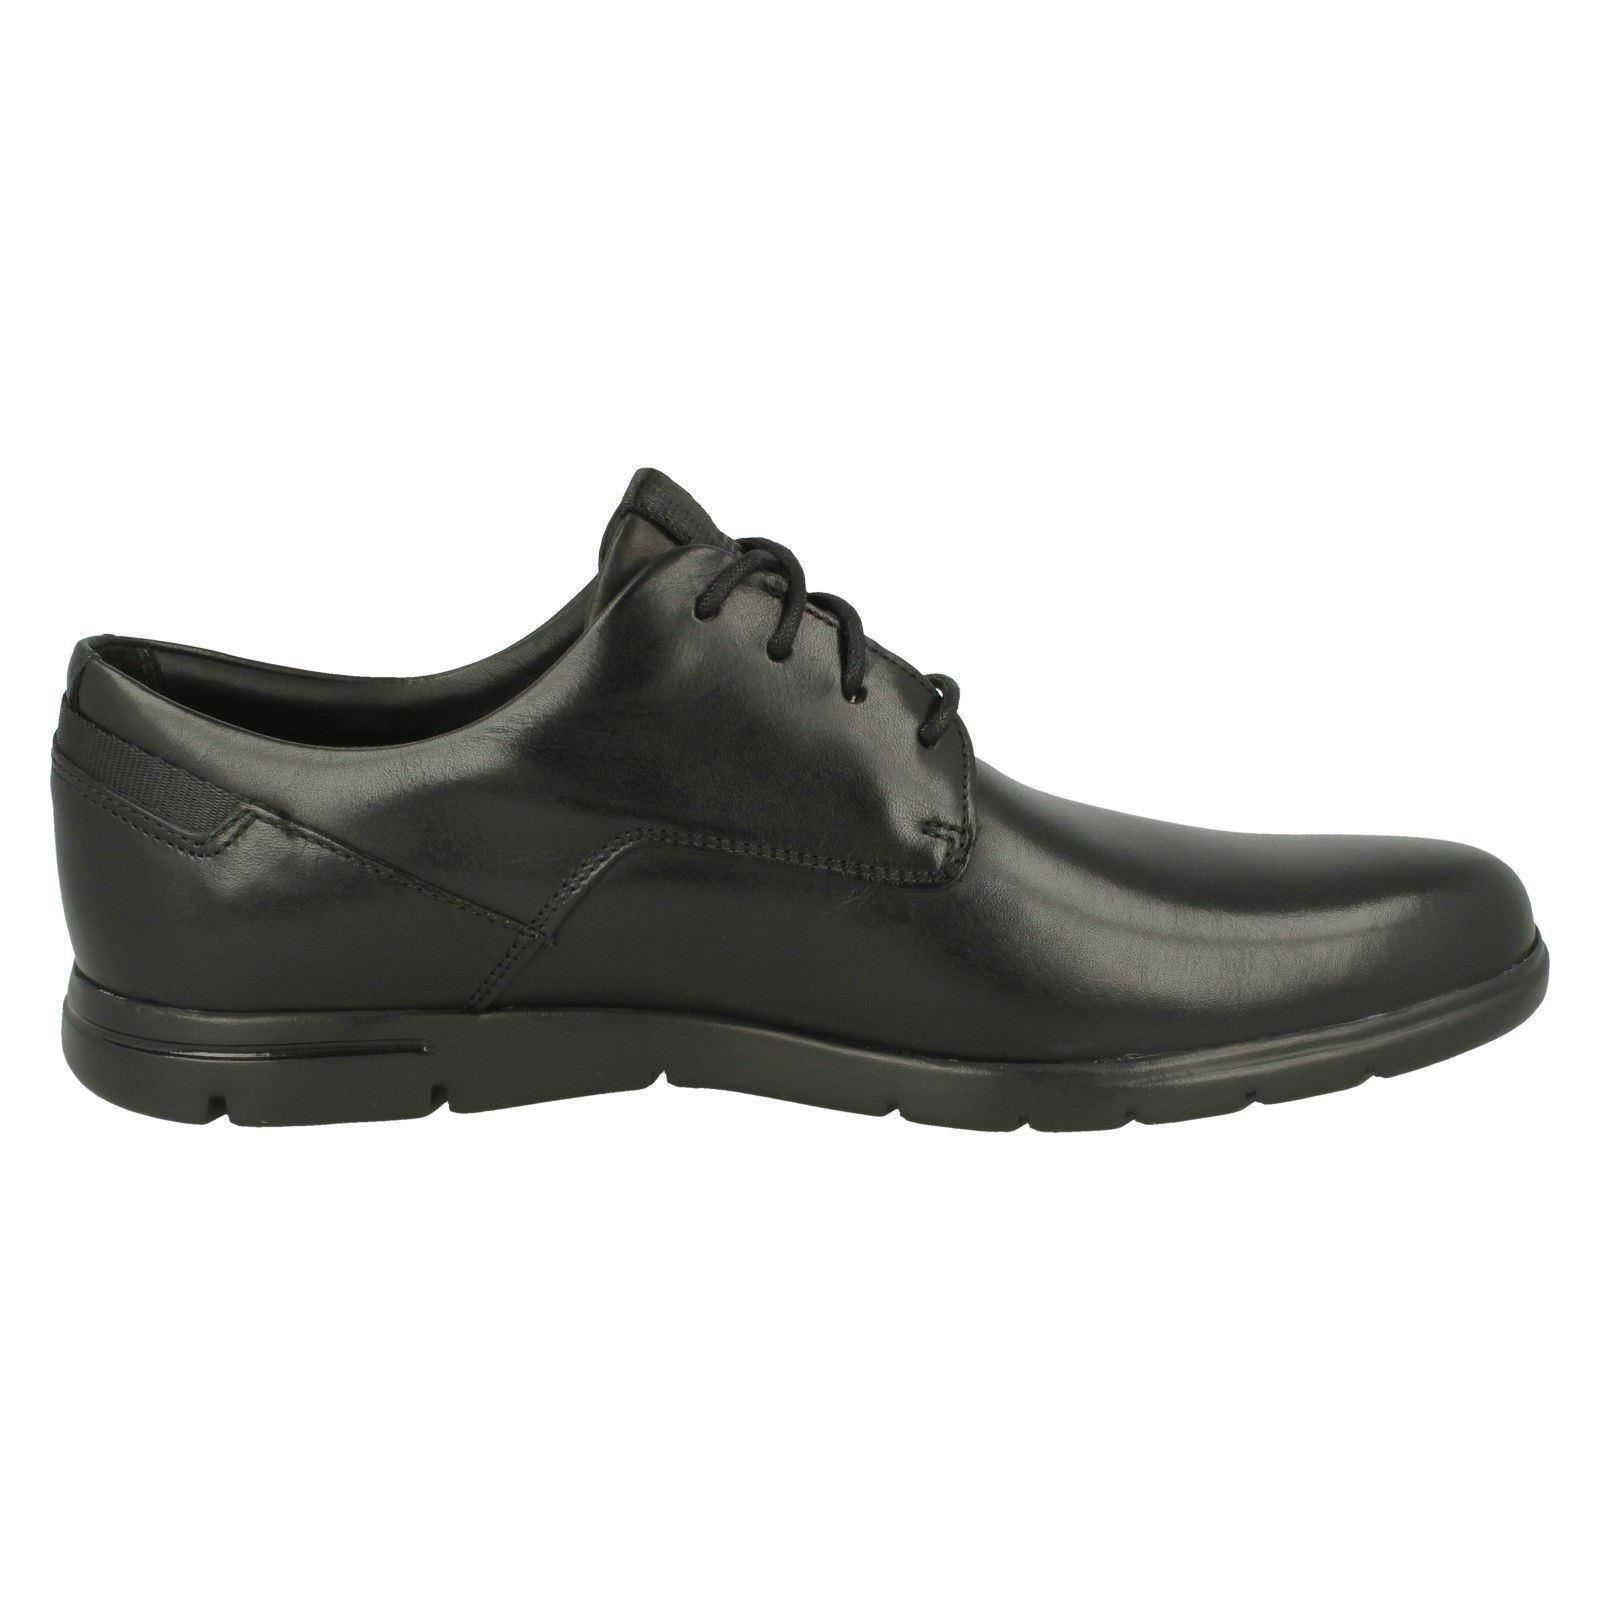 Men's The Clarks Formal Lace Up Smart Shoes The Men's Style - Vennor Walk 66cb43